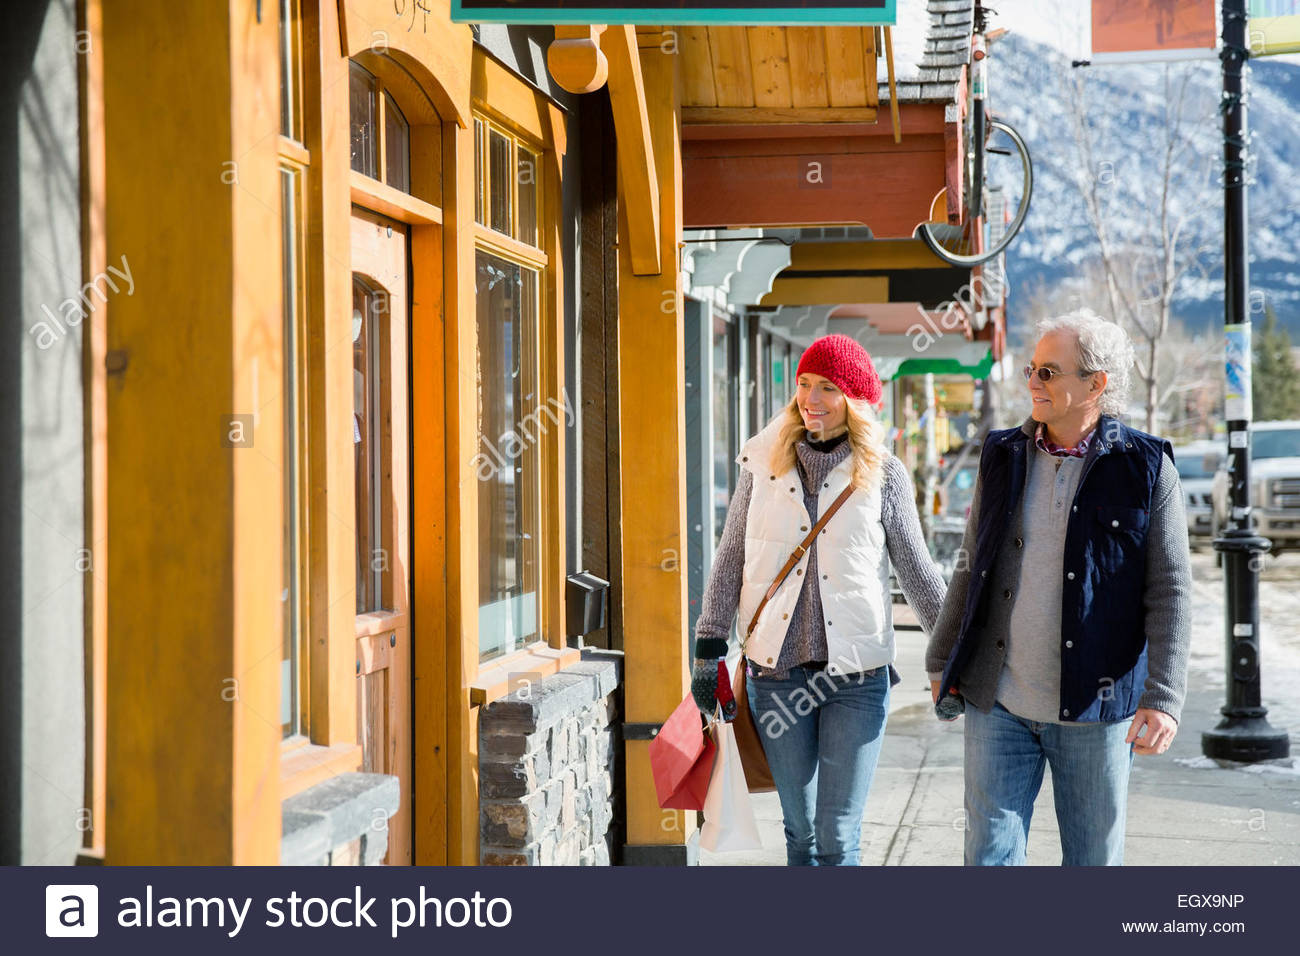 Couple in warm clothing walking along storefront Stock Photo